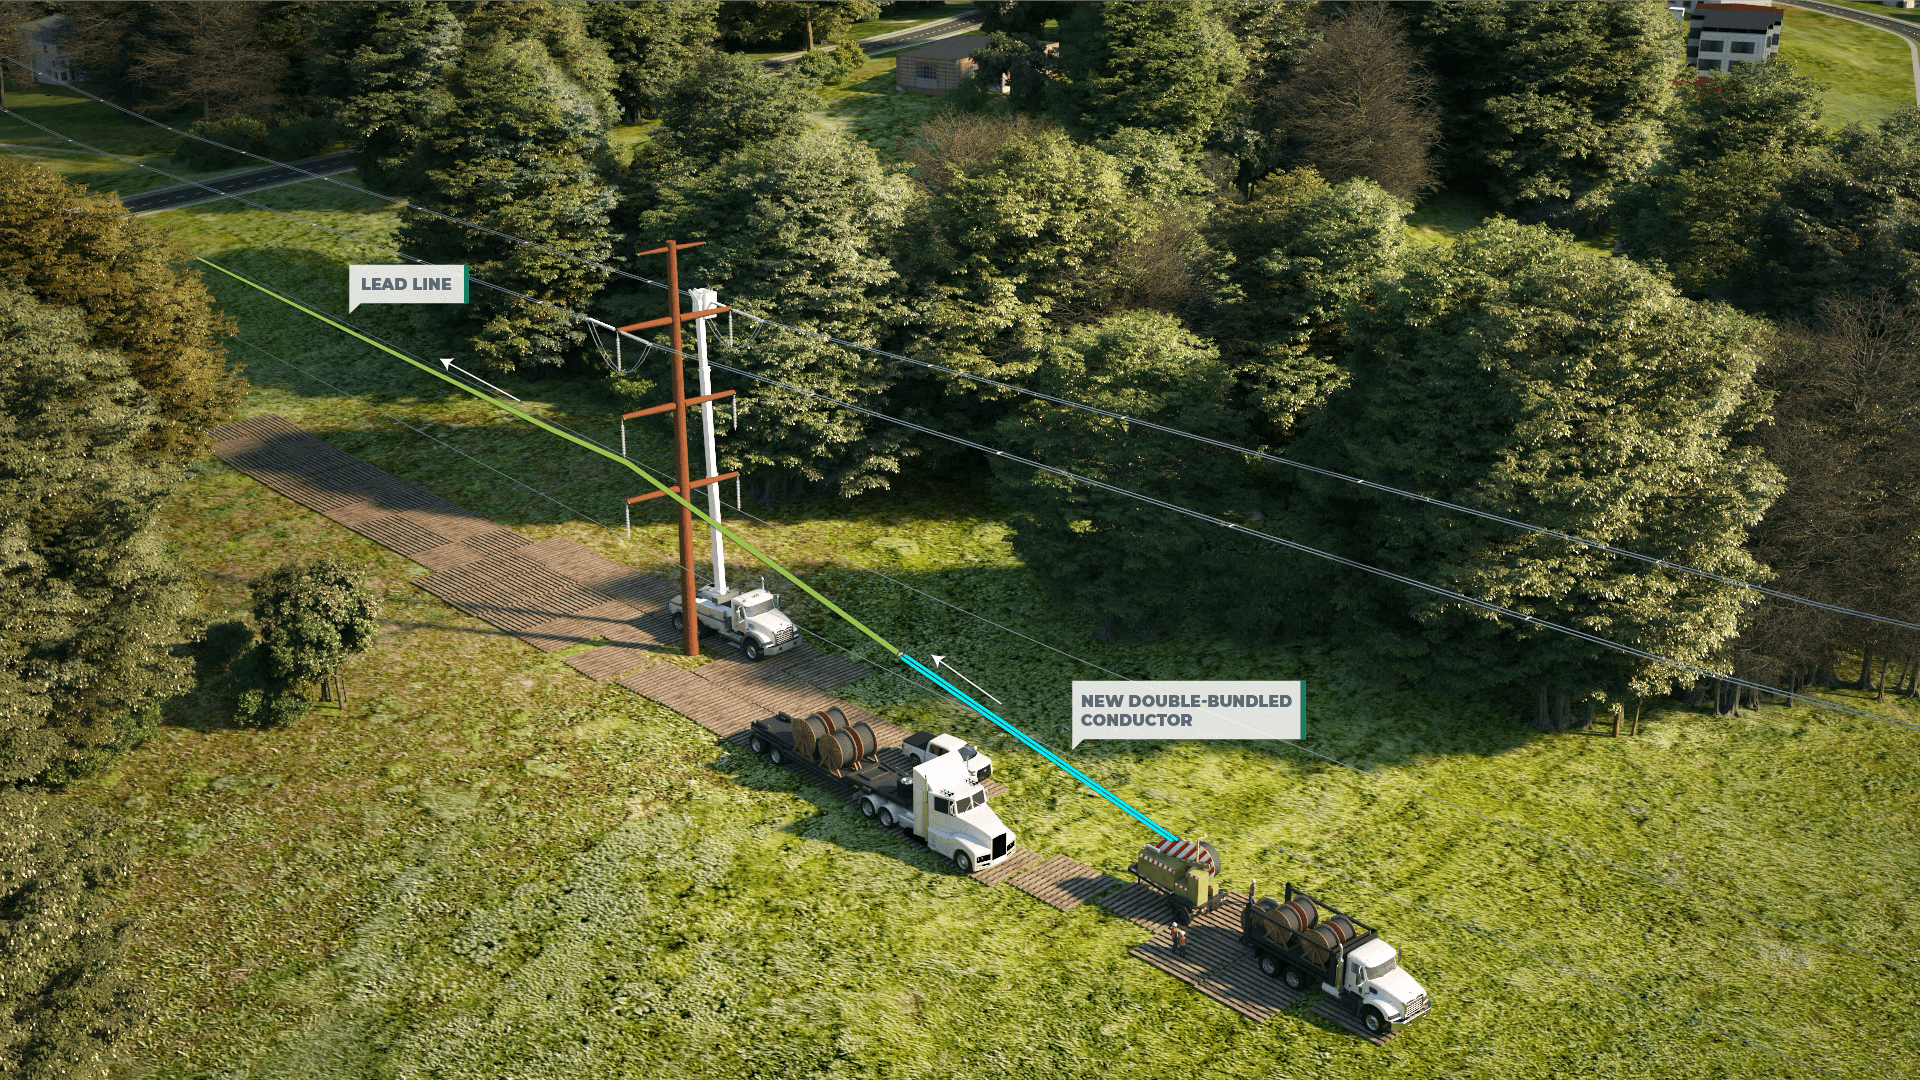 <h2>Step 3: Installation of New Conductor</h2>A Lead Line will be installed on the vacant transmission pole arms and will be utilized to pull new double-bundled conductor into place.